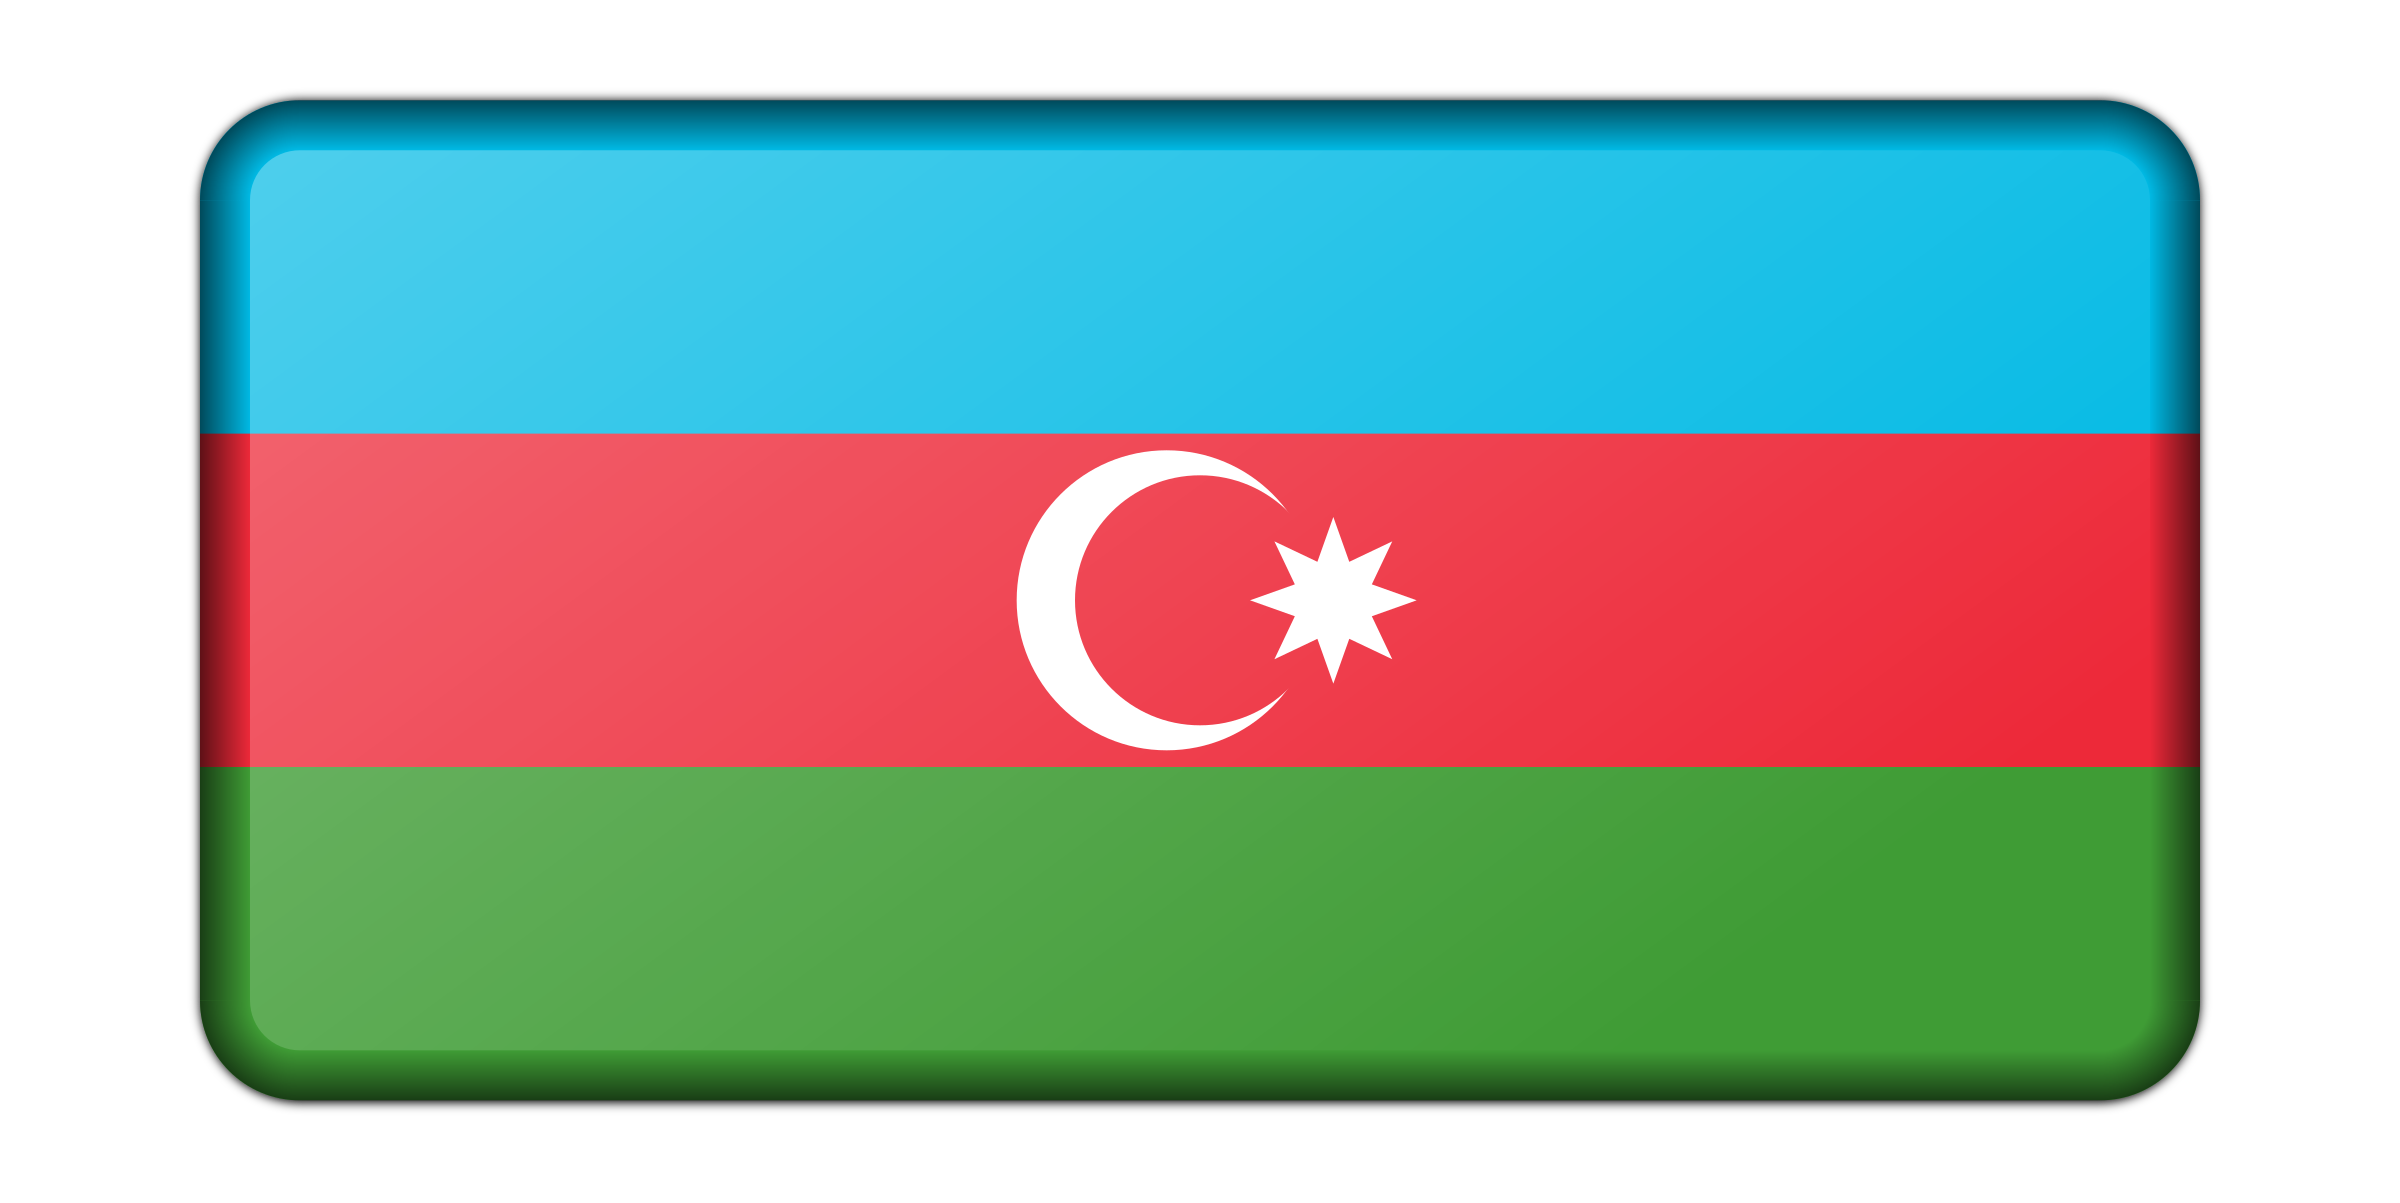 Azerbaijan flag (bevelled) by Firkin